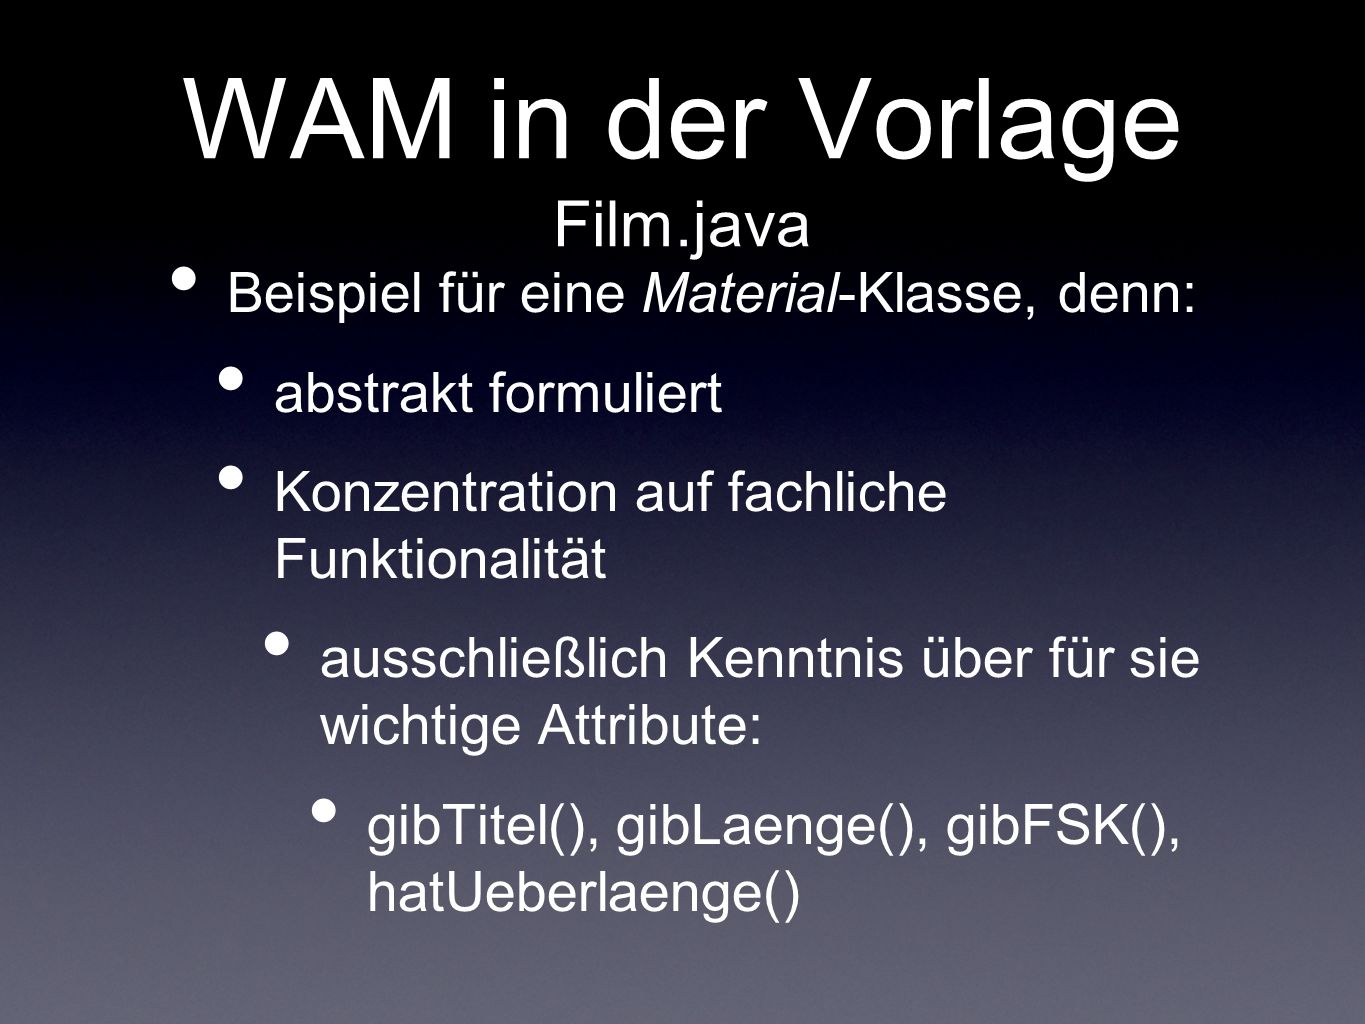 WAM in der Vorlage Film.java